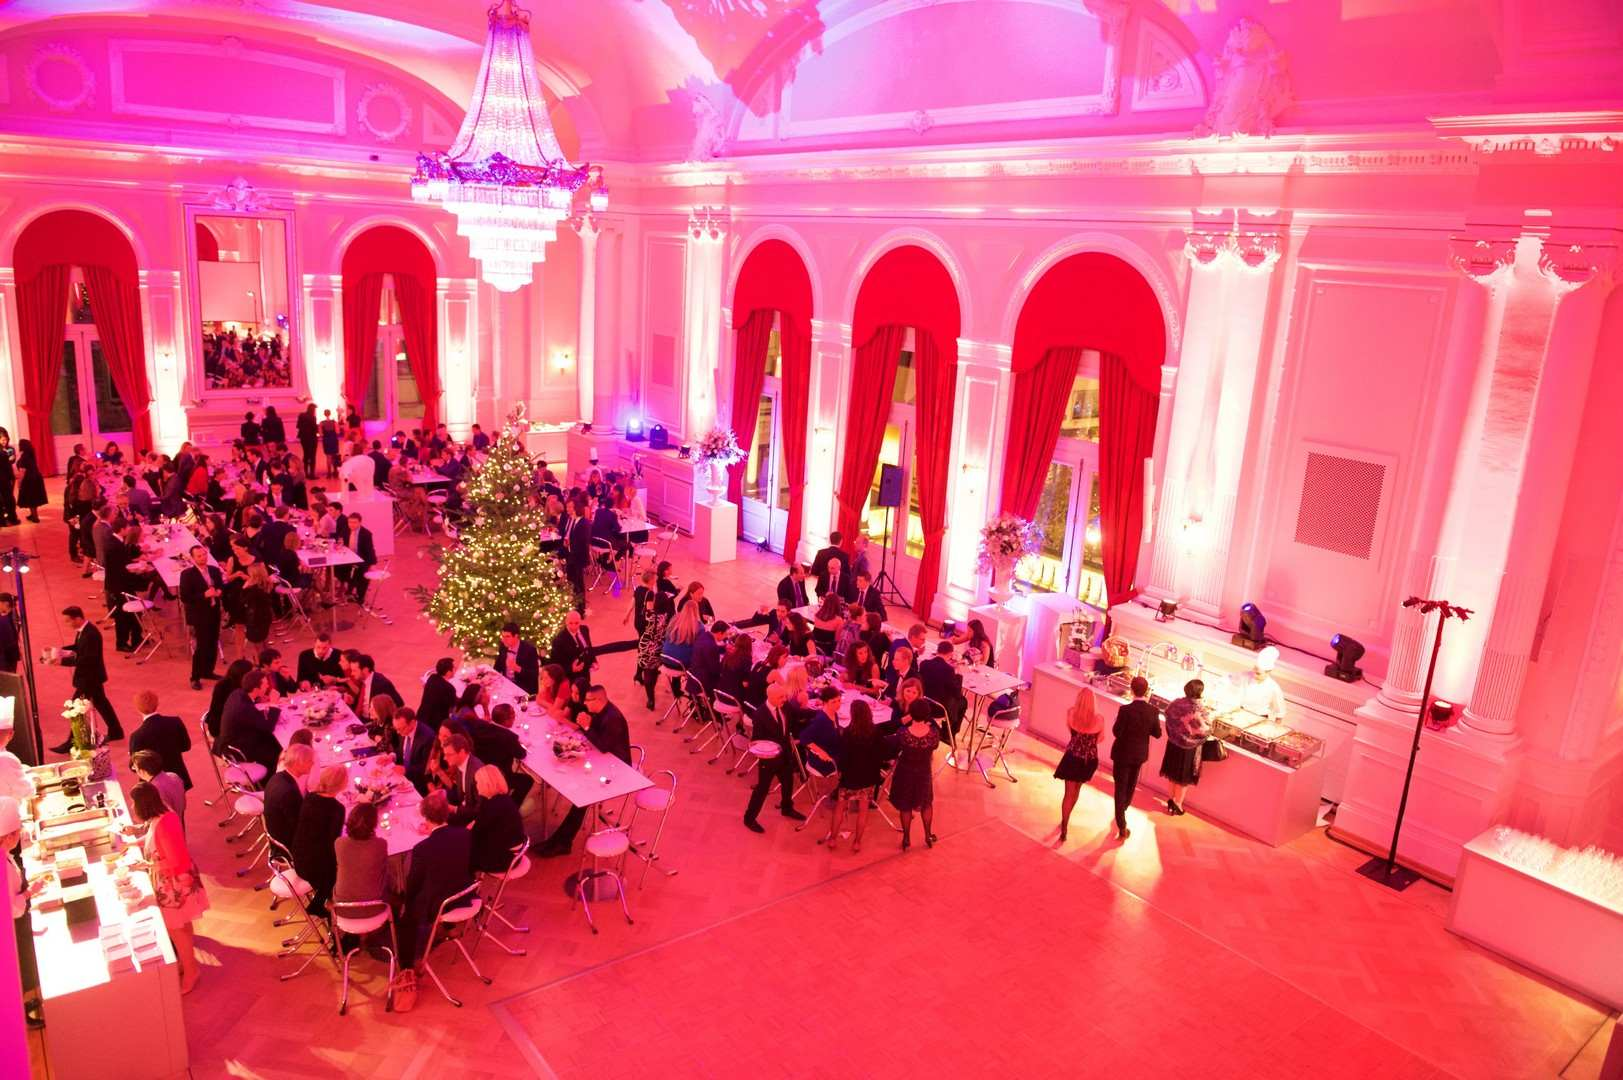 xmas-party-loyens-loeff-2014-event-christmas-lux